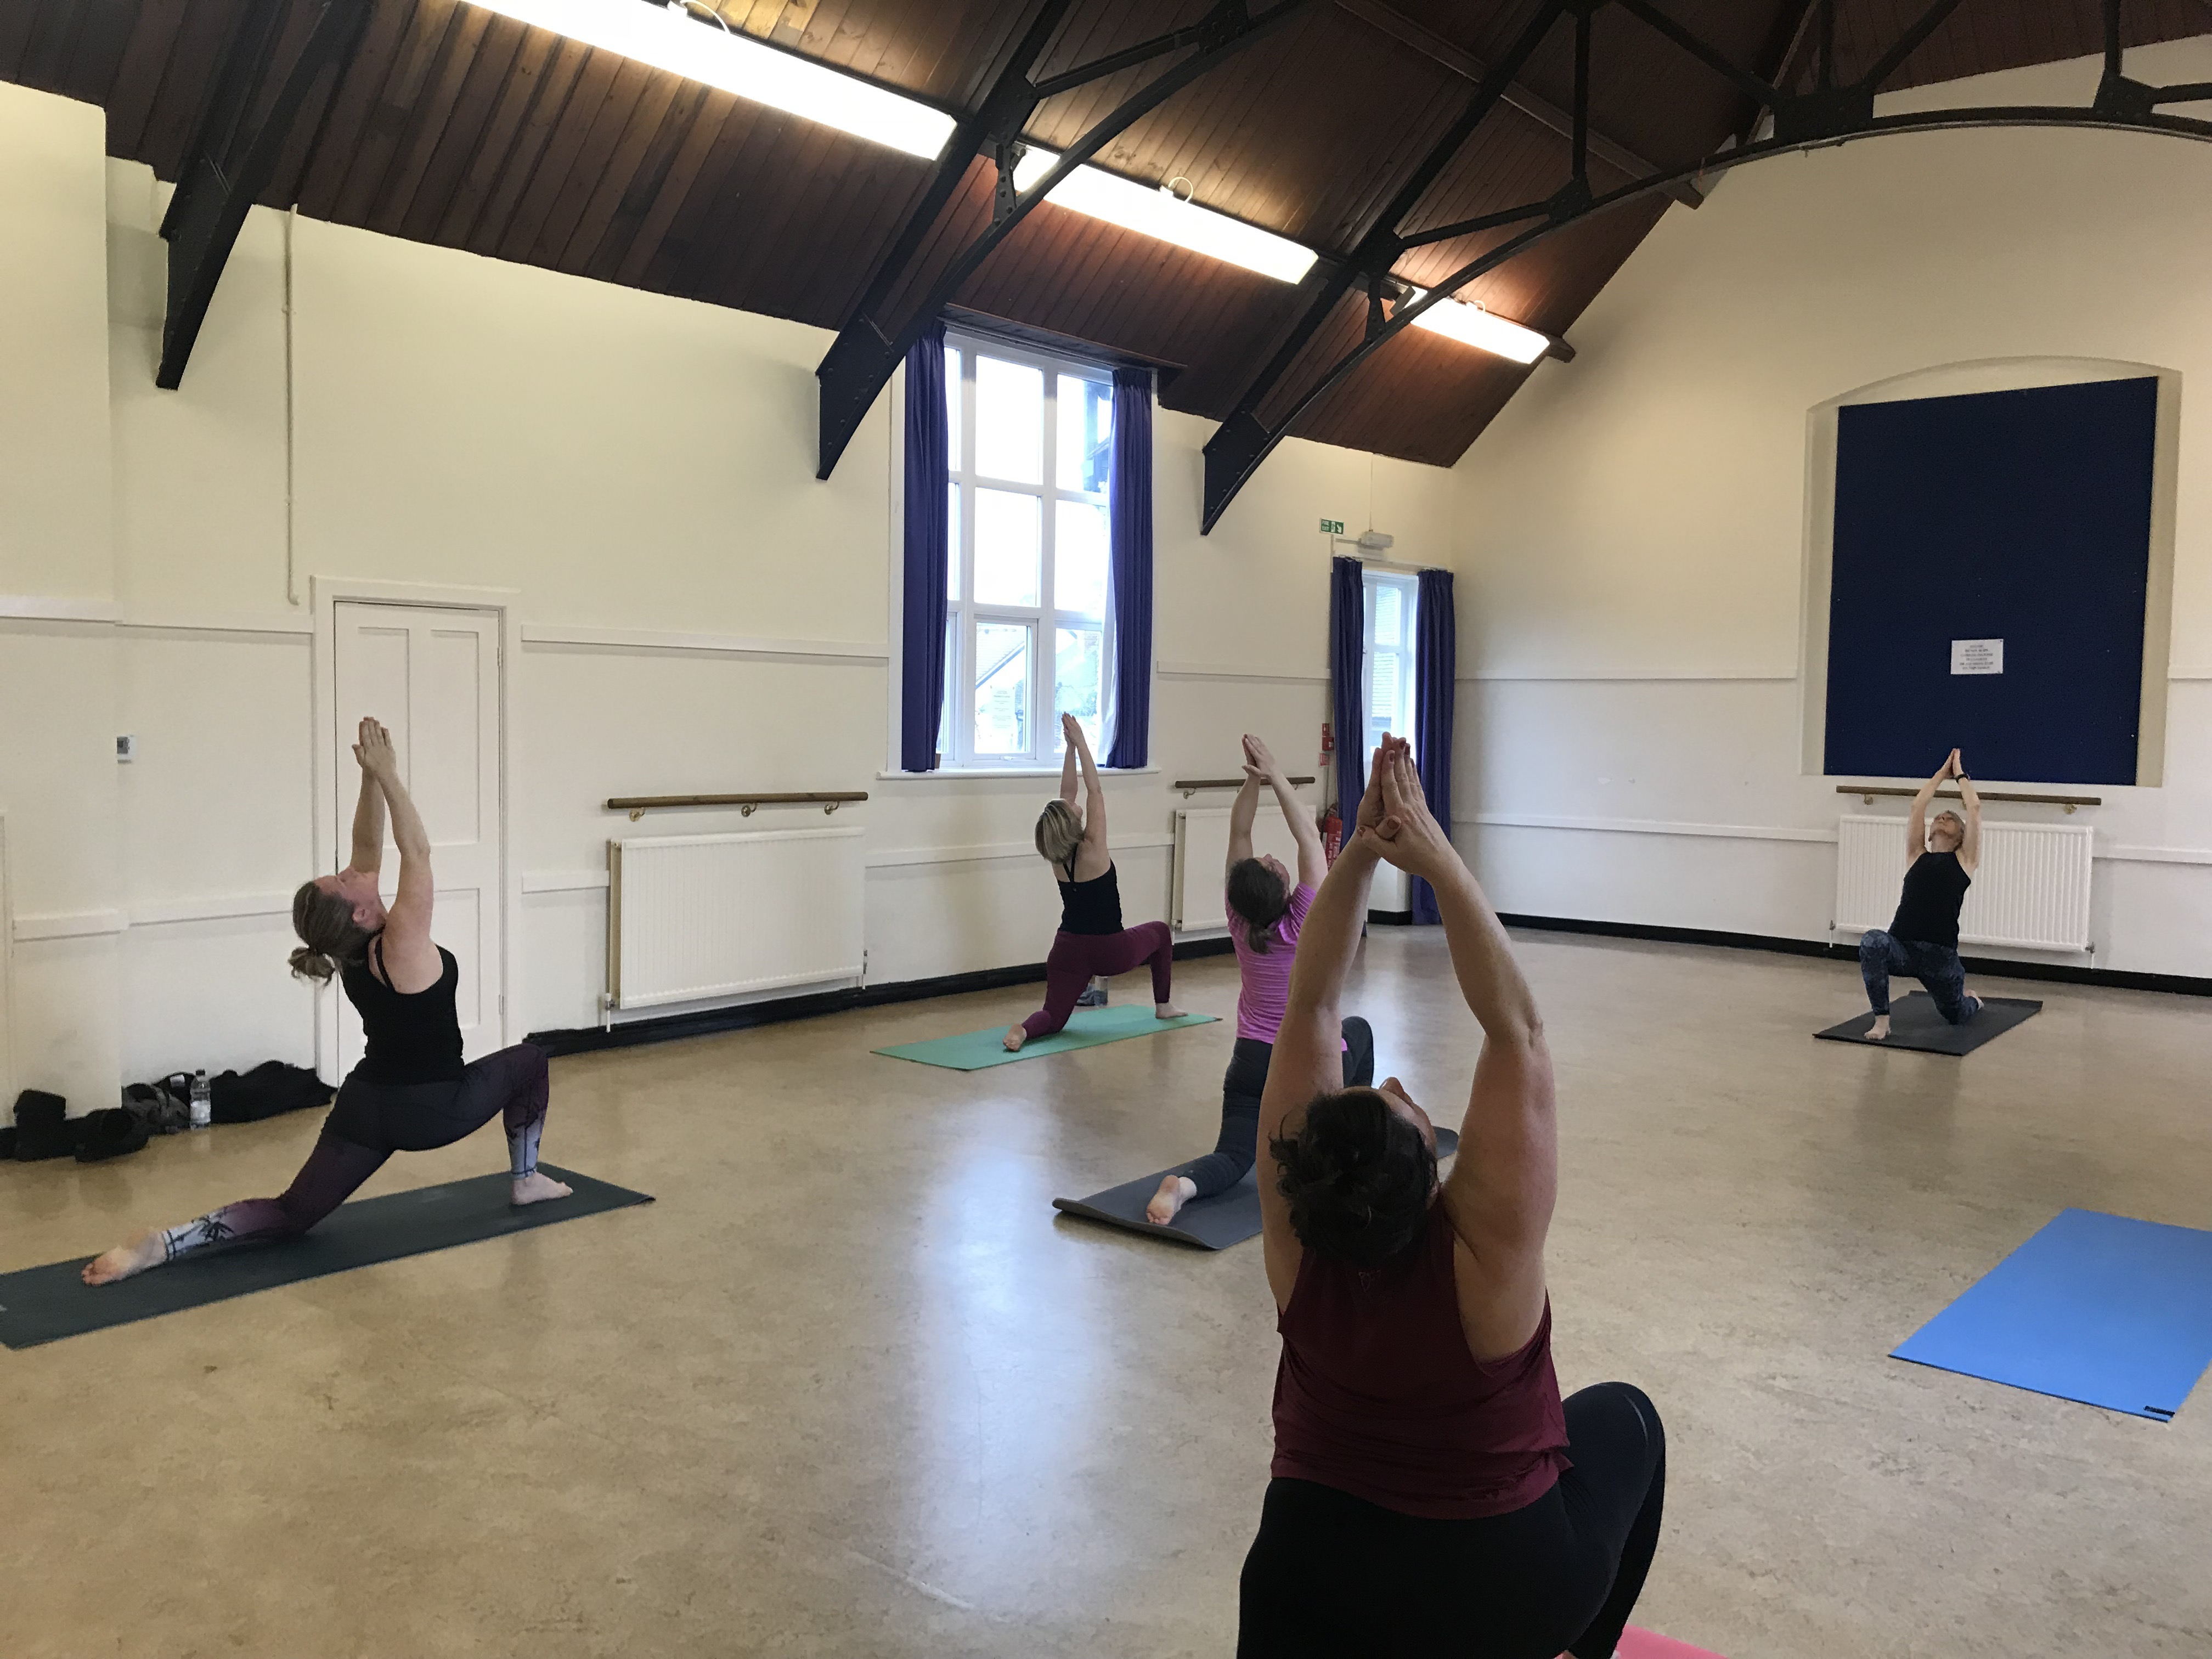 YogaWithVickiB yoga class practicing Crescent Moon pose